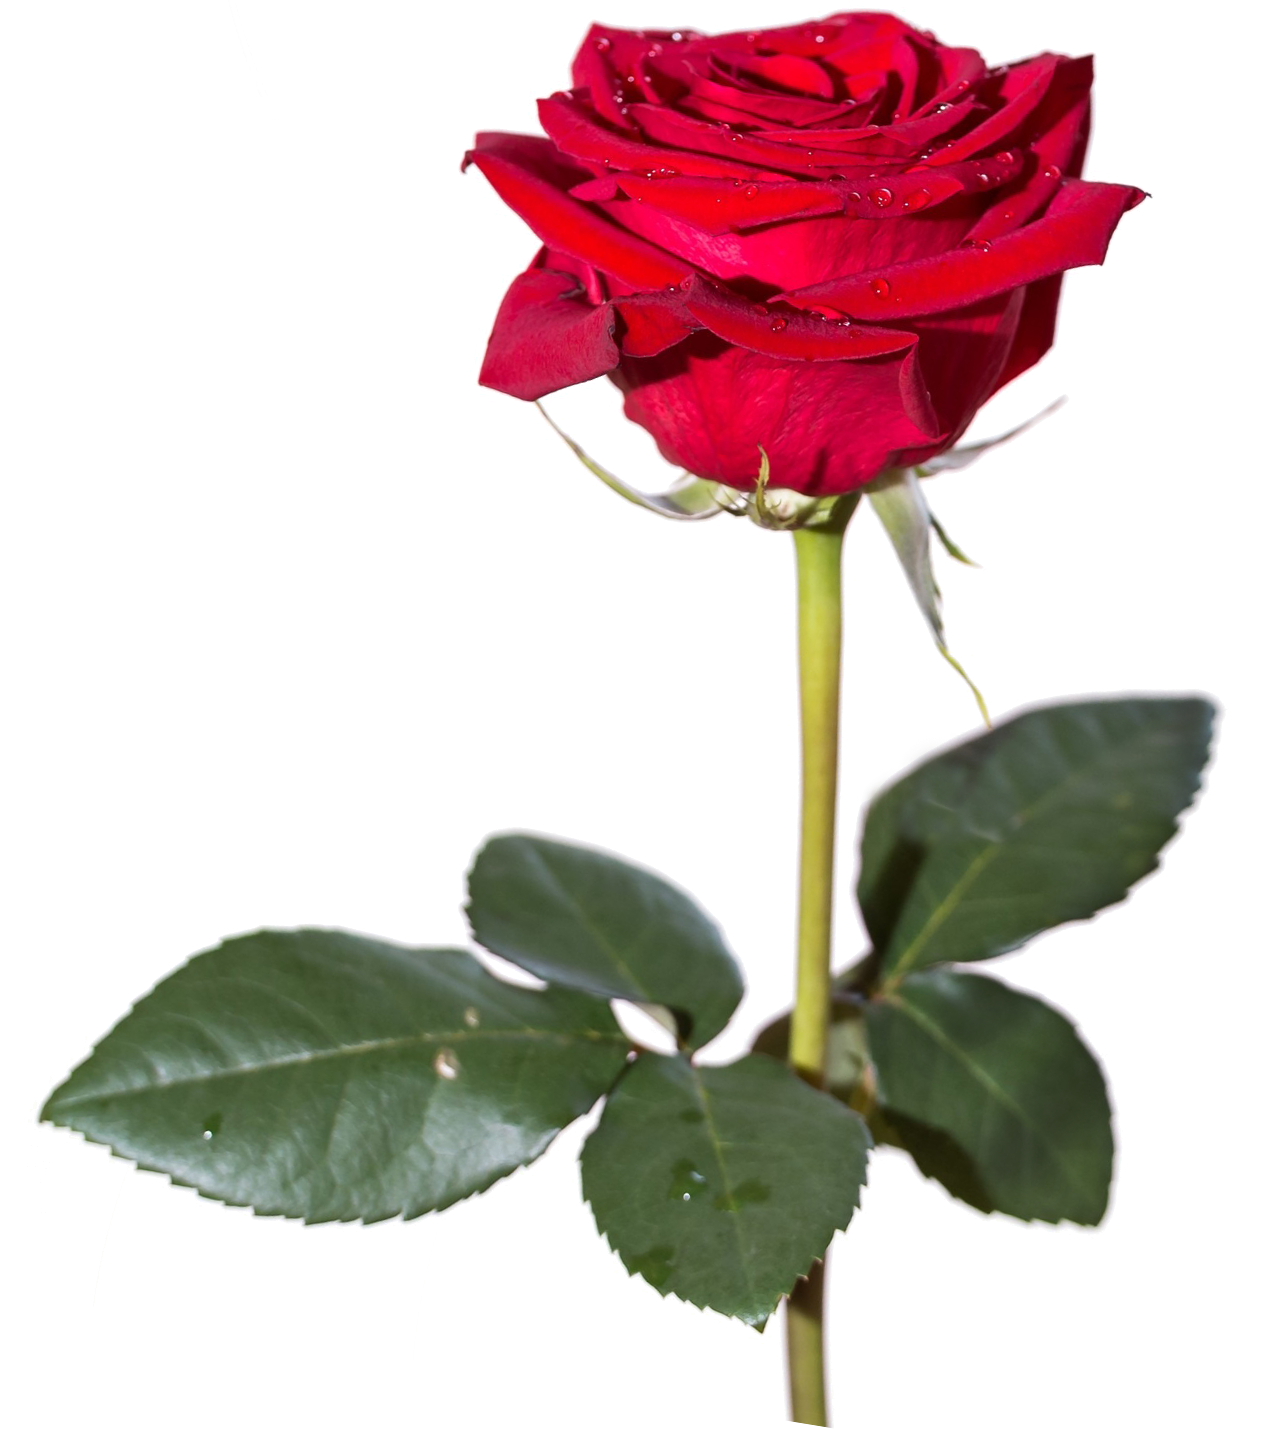 Download Red Rose Hd HQ PNG Image